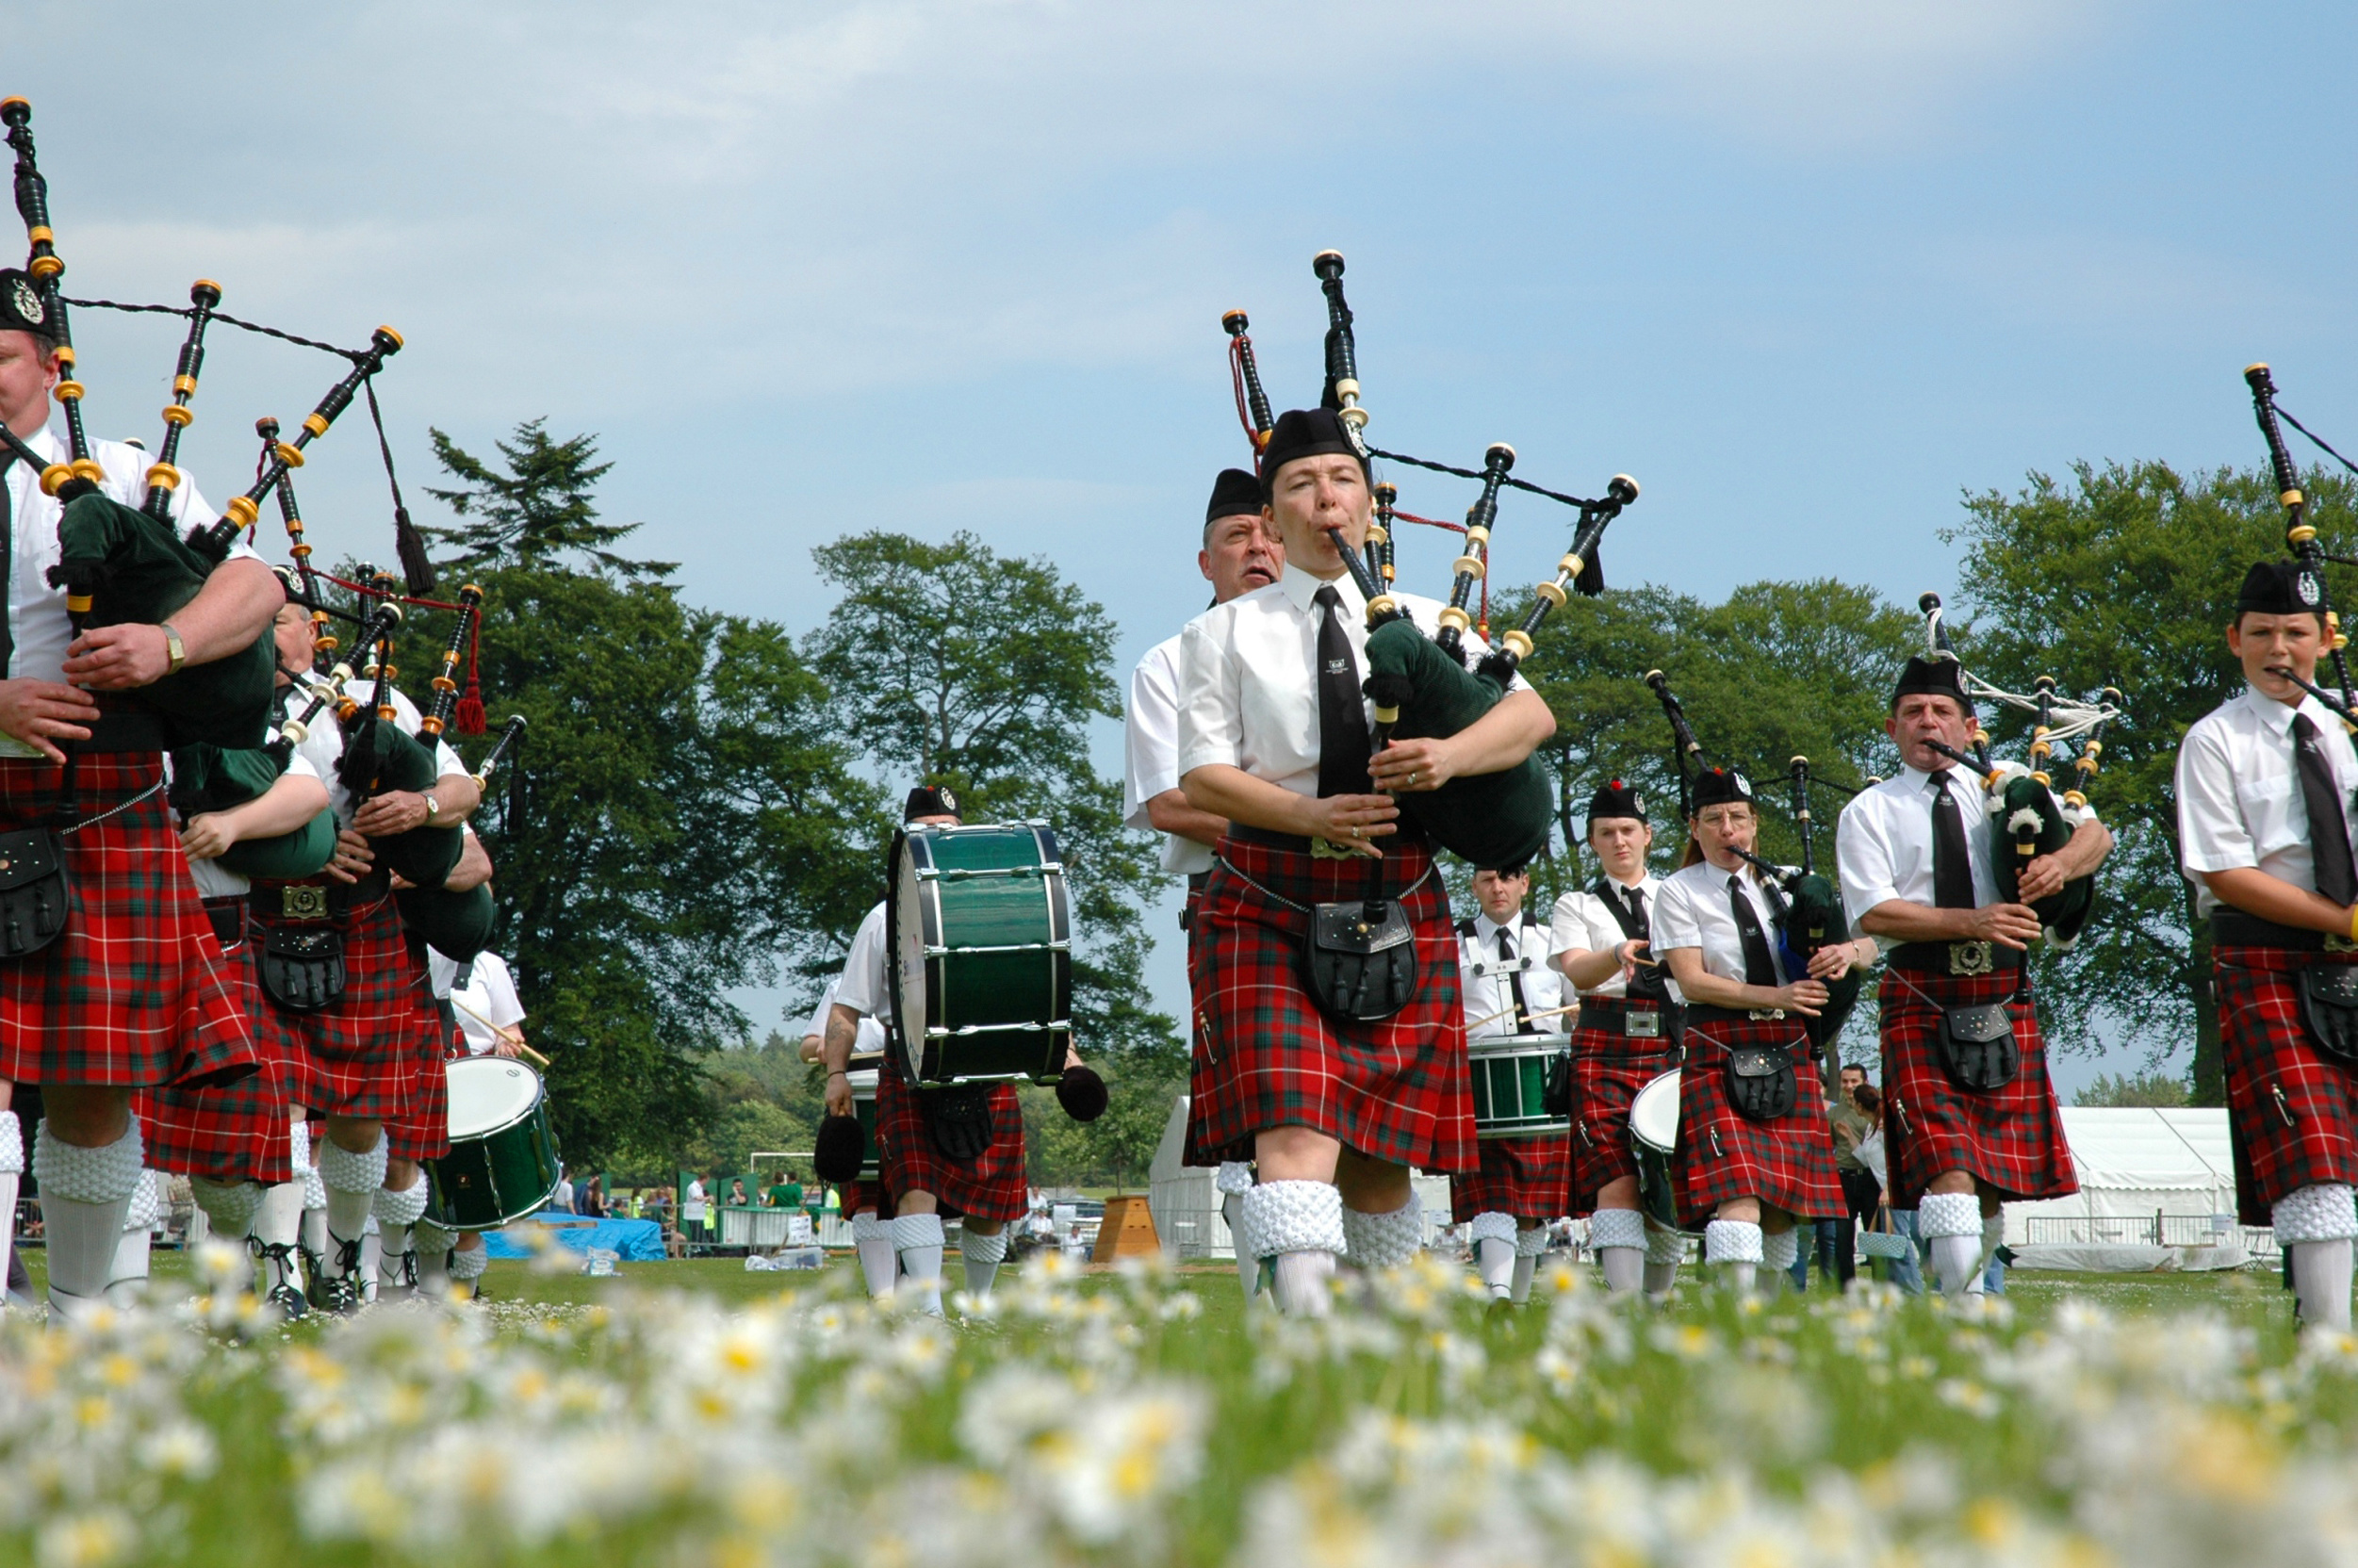 bagpipes at a highland games event